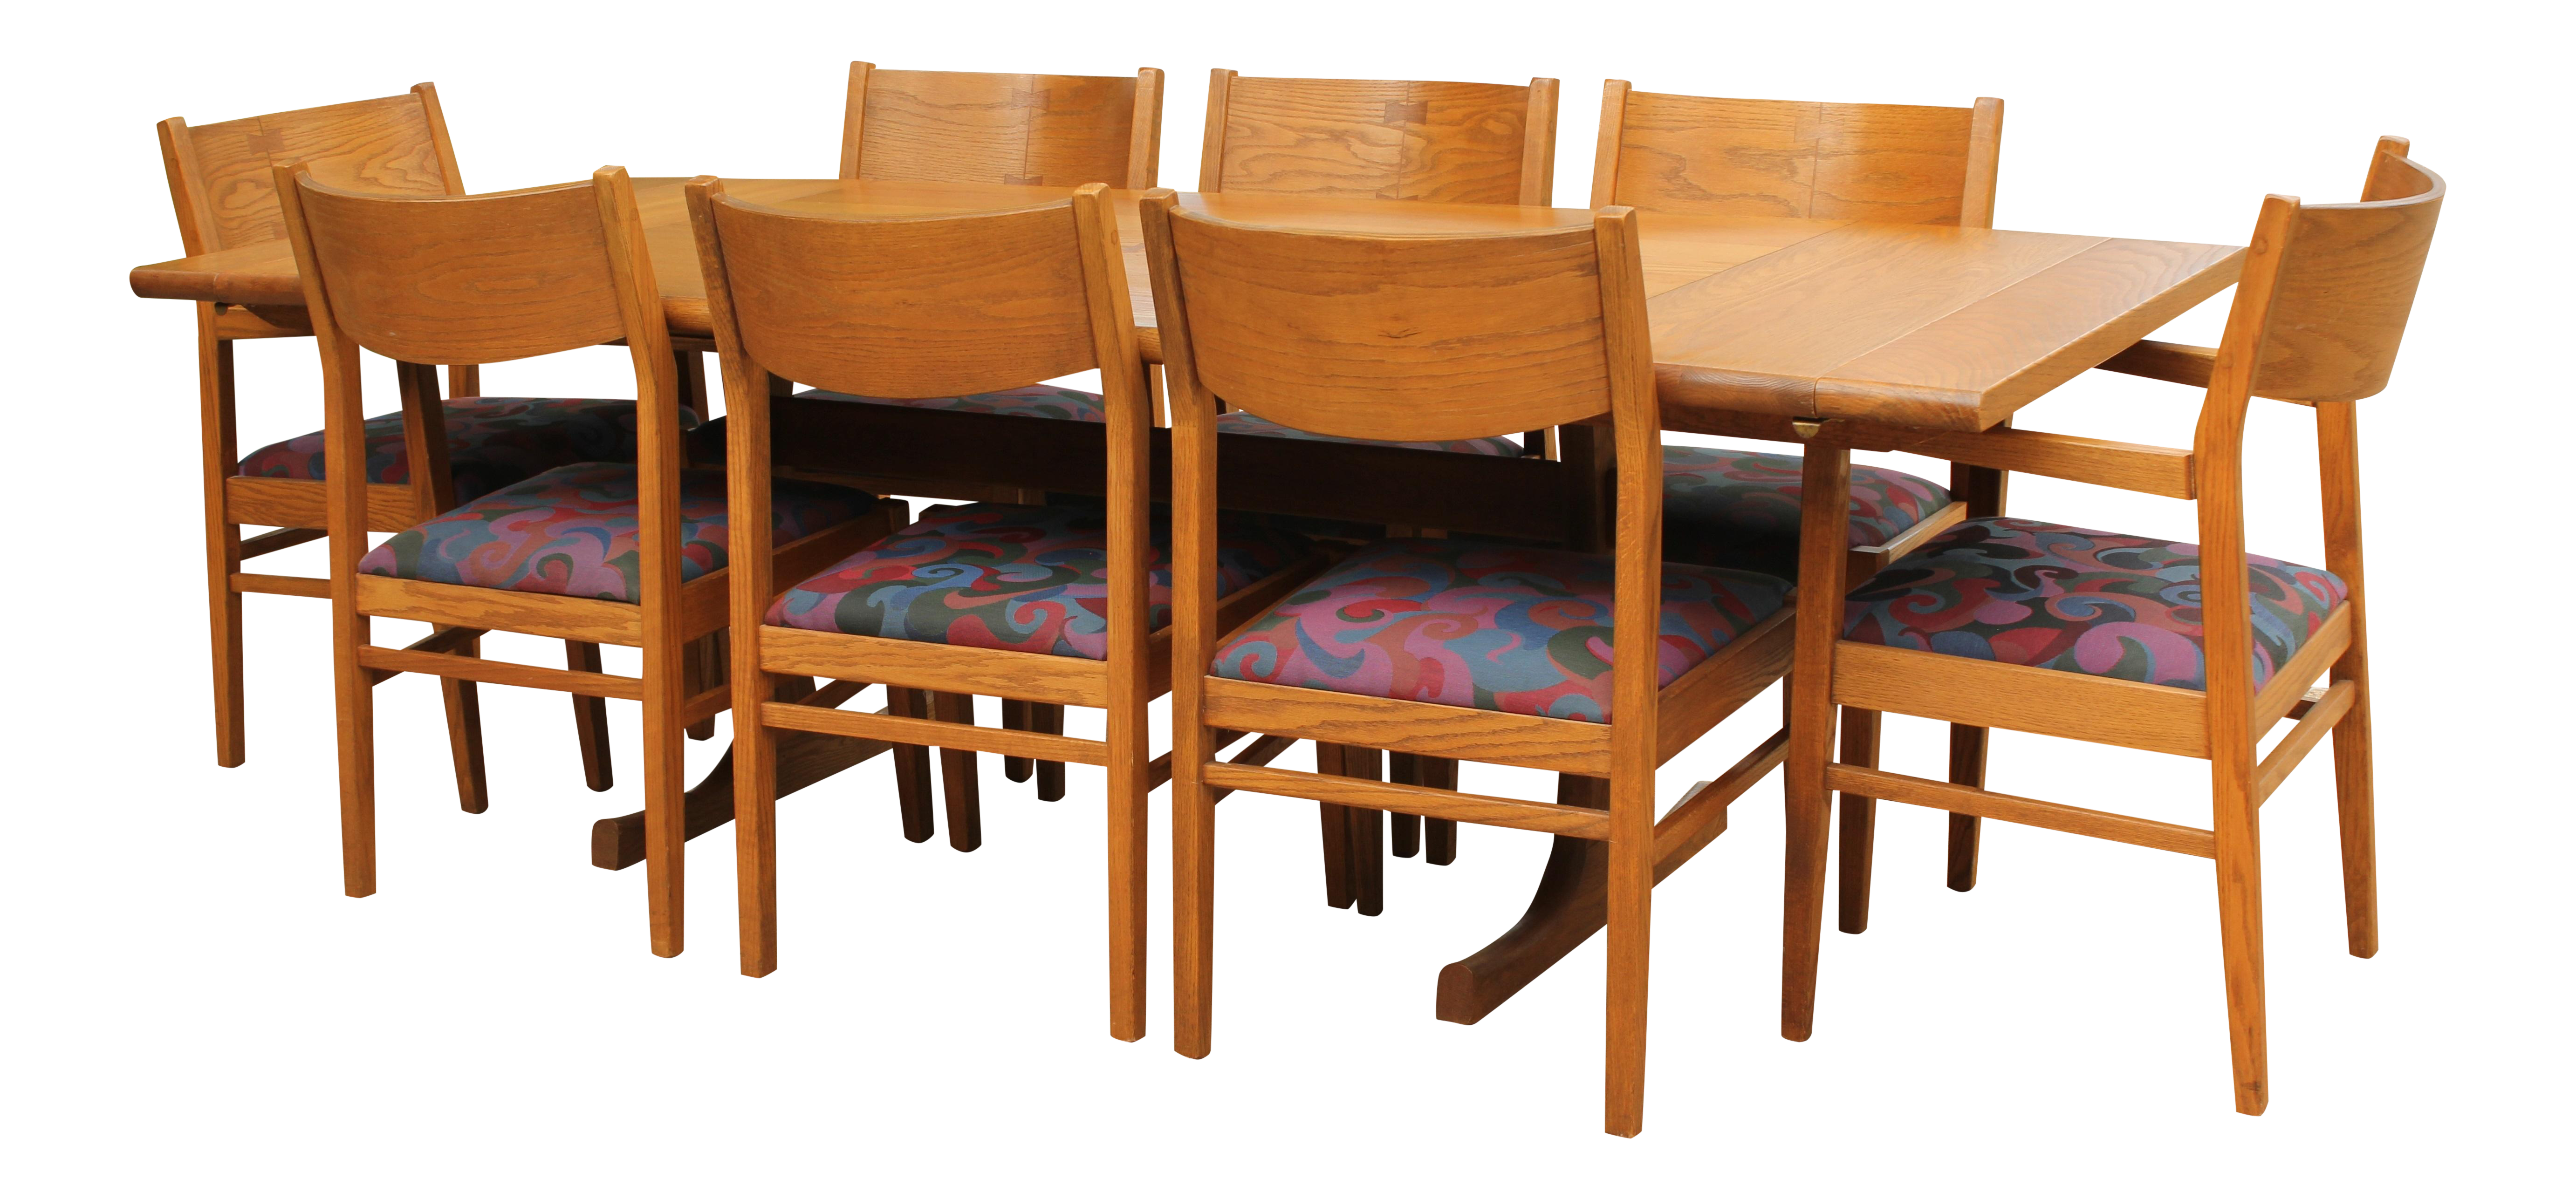 conant ball oak dining table and 8 chairs conant ball oak dining table and 8 chairs   chairish  rh   chairish com